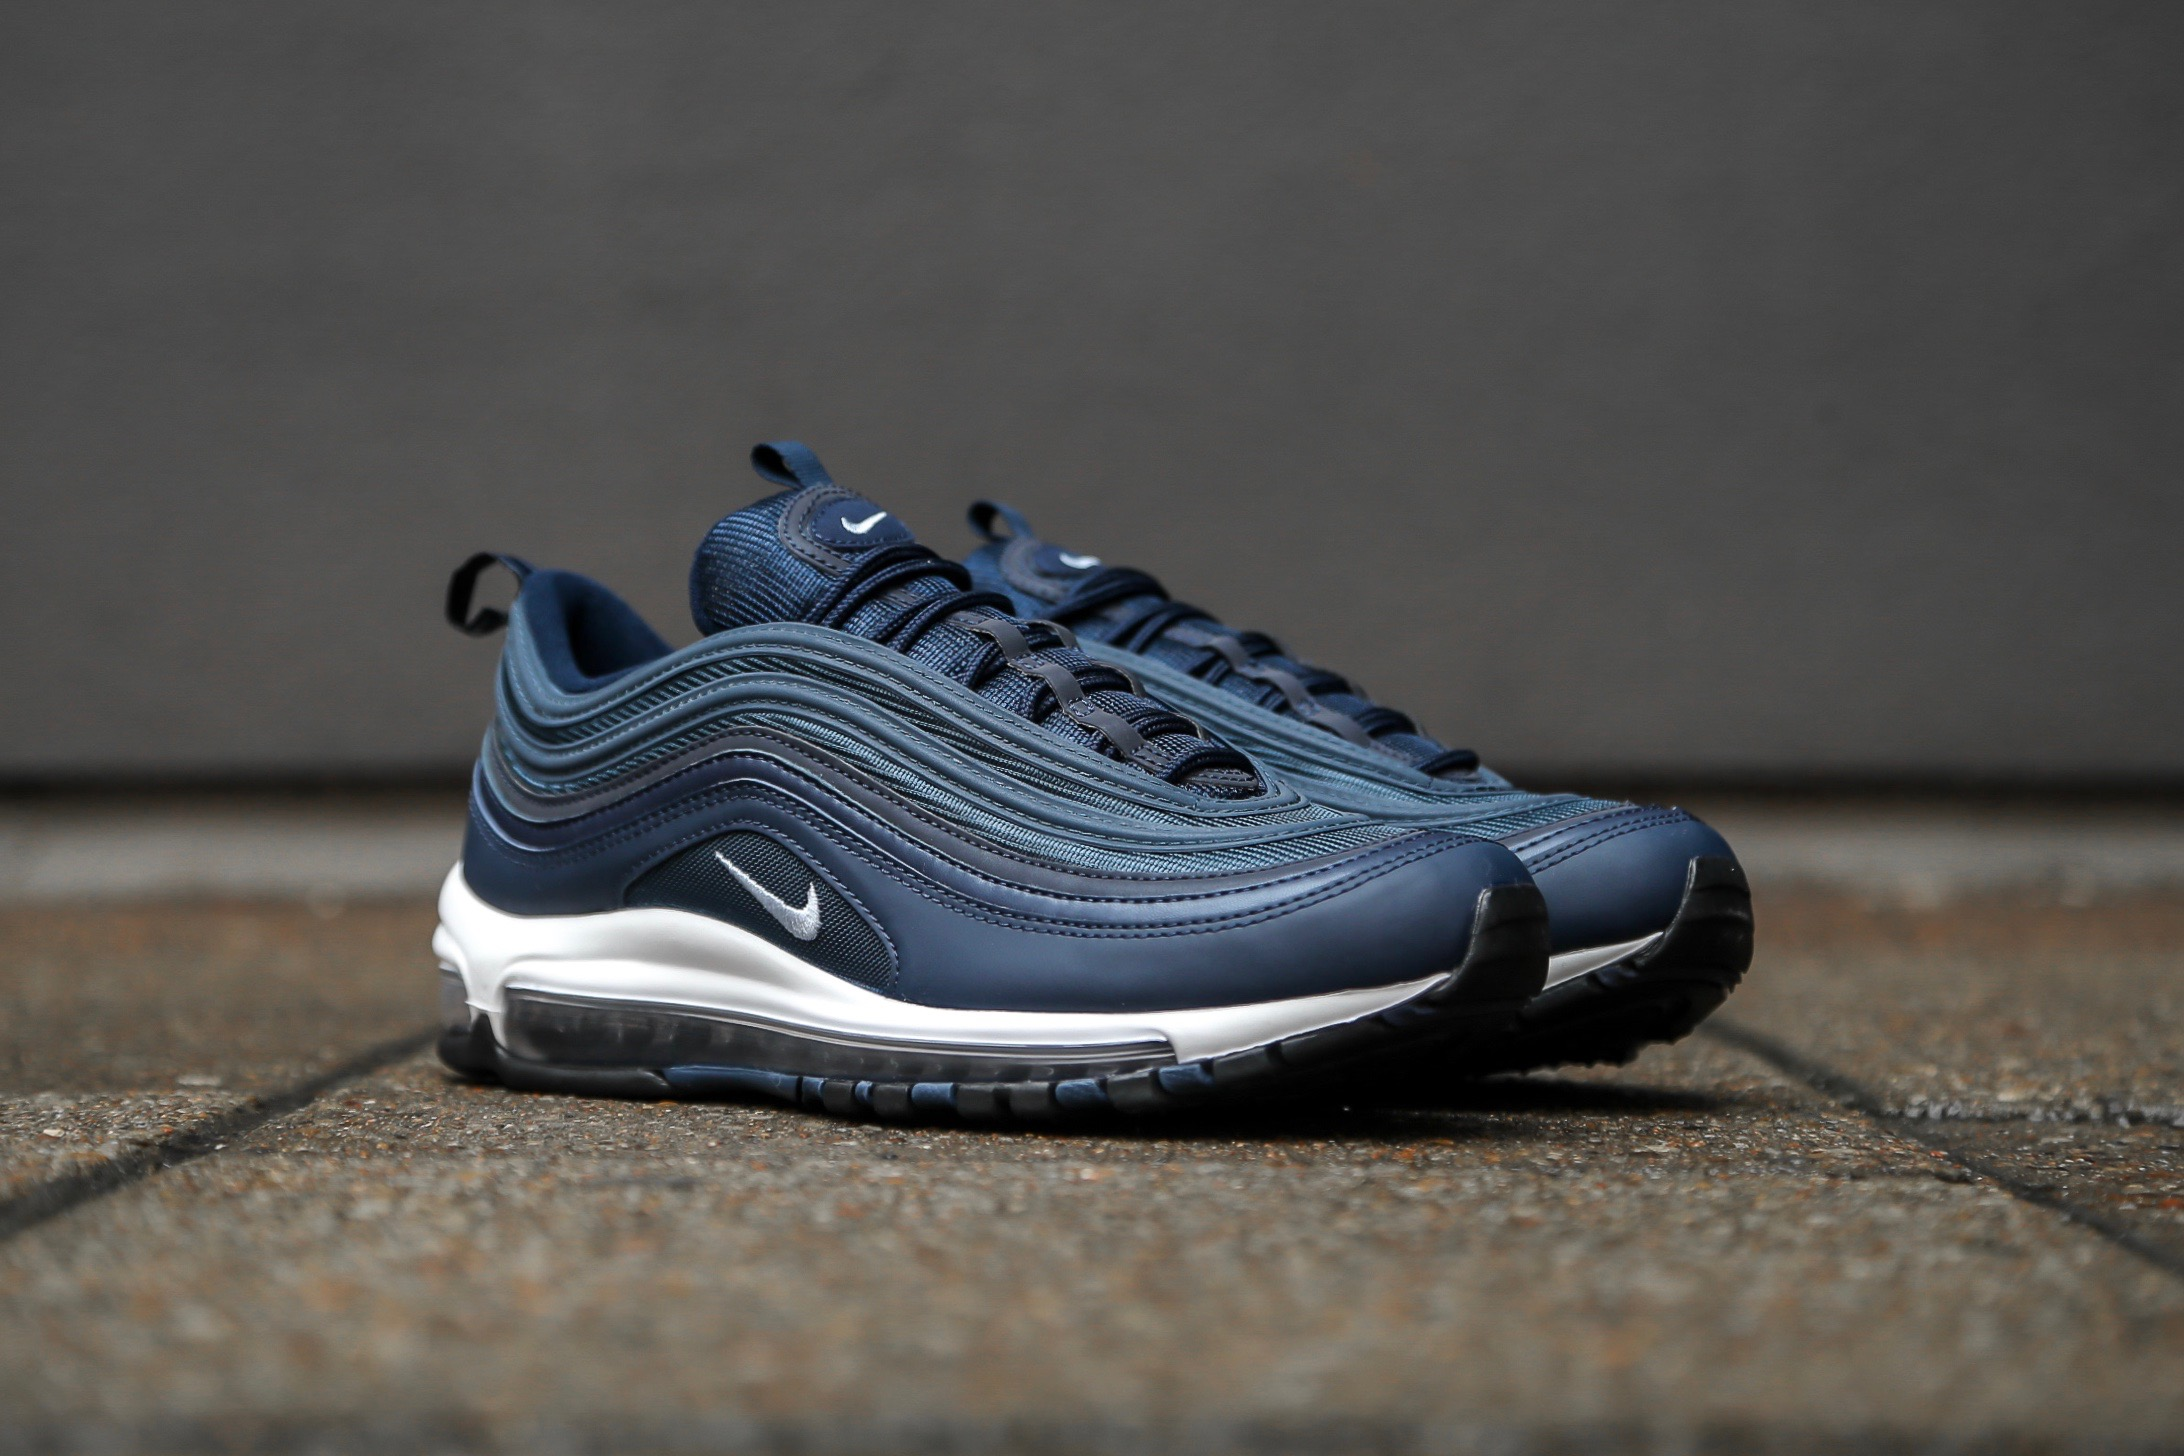 Nike Air Max 97 Essential Obsidian Monsoon Blue White Obsidian Mist